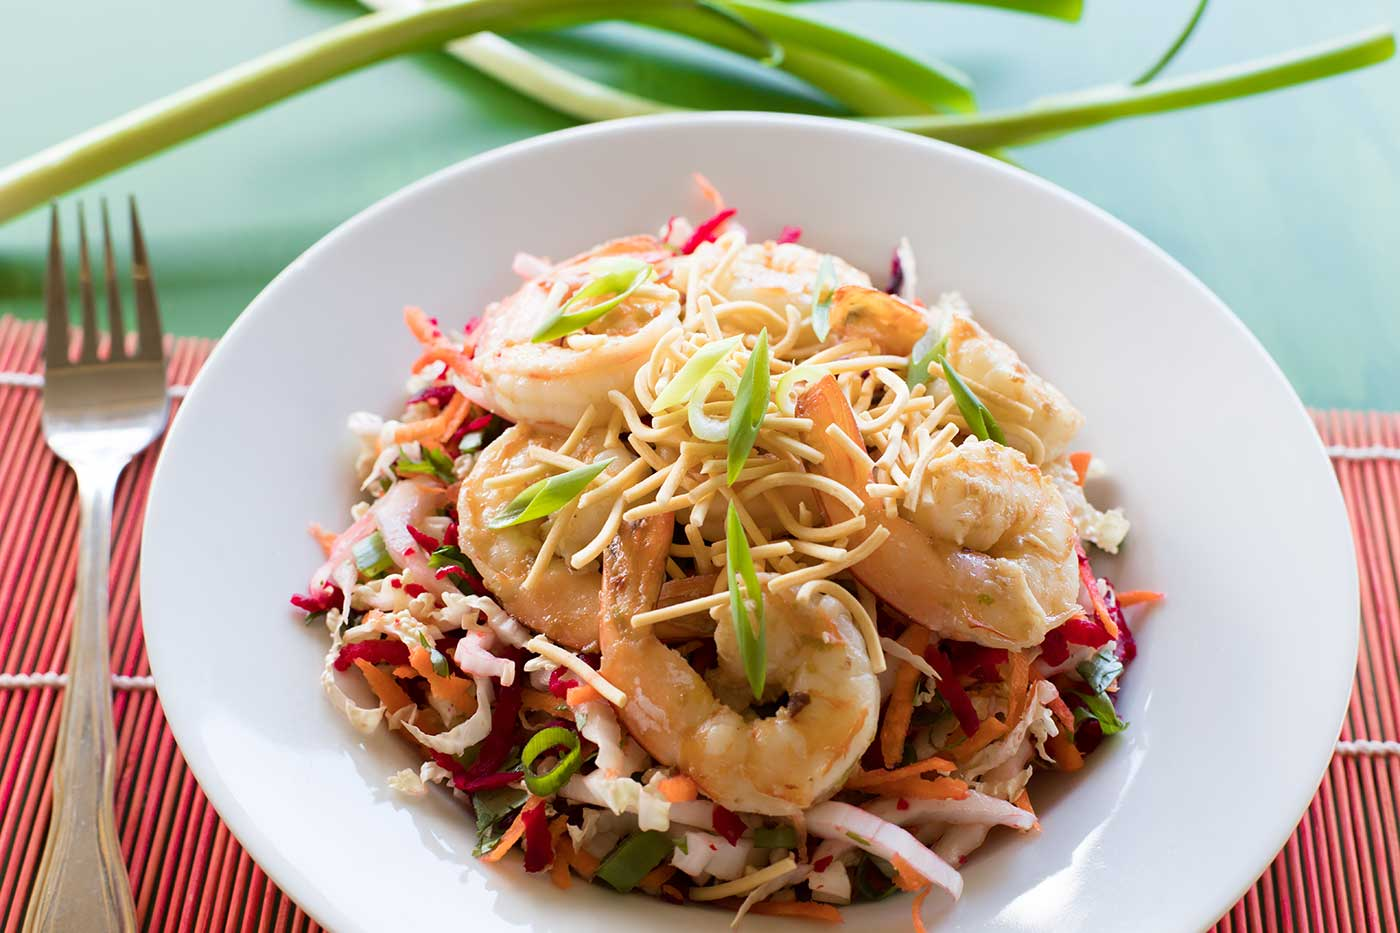 Prawn-and-Crunchy-Noodle-Salad-Thermomix-Recipe